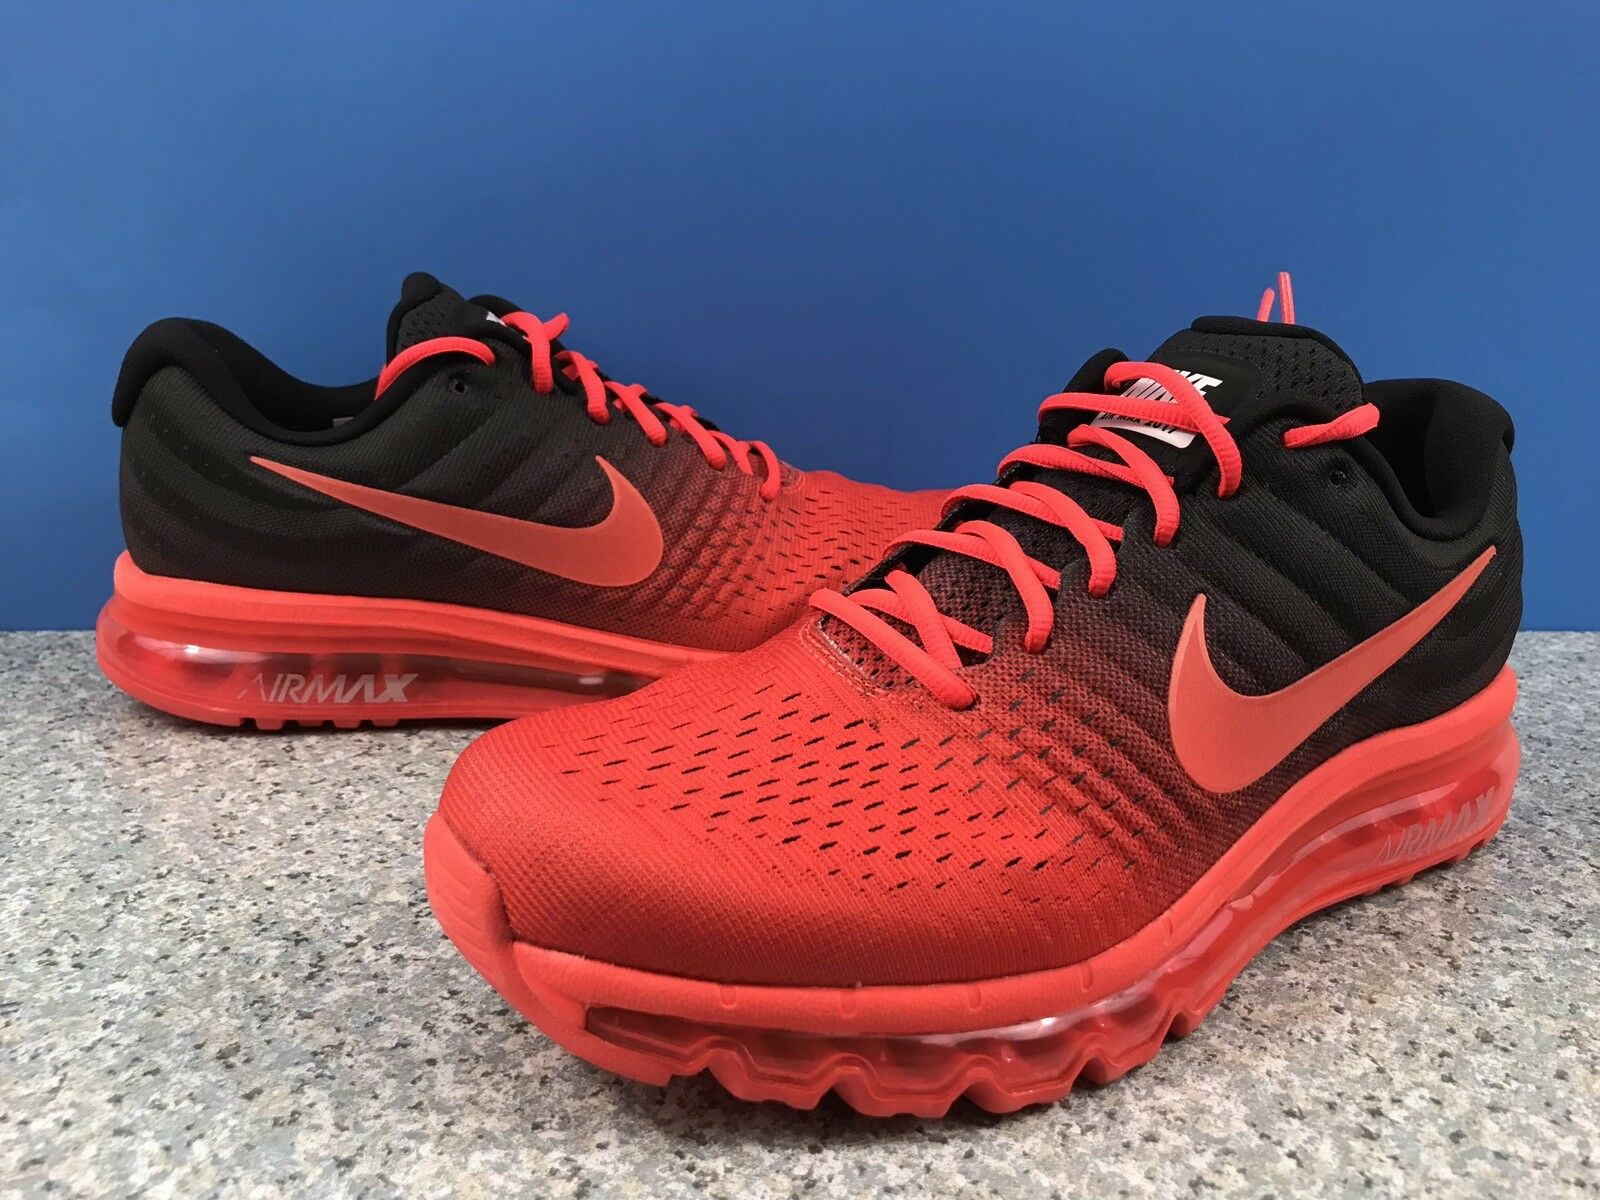 Nike Air Max 2017 Bright Crimson Total Crimson Black SZ 14 849559-600